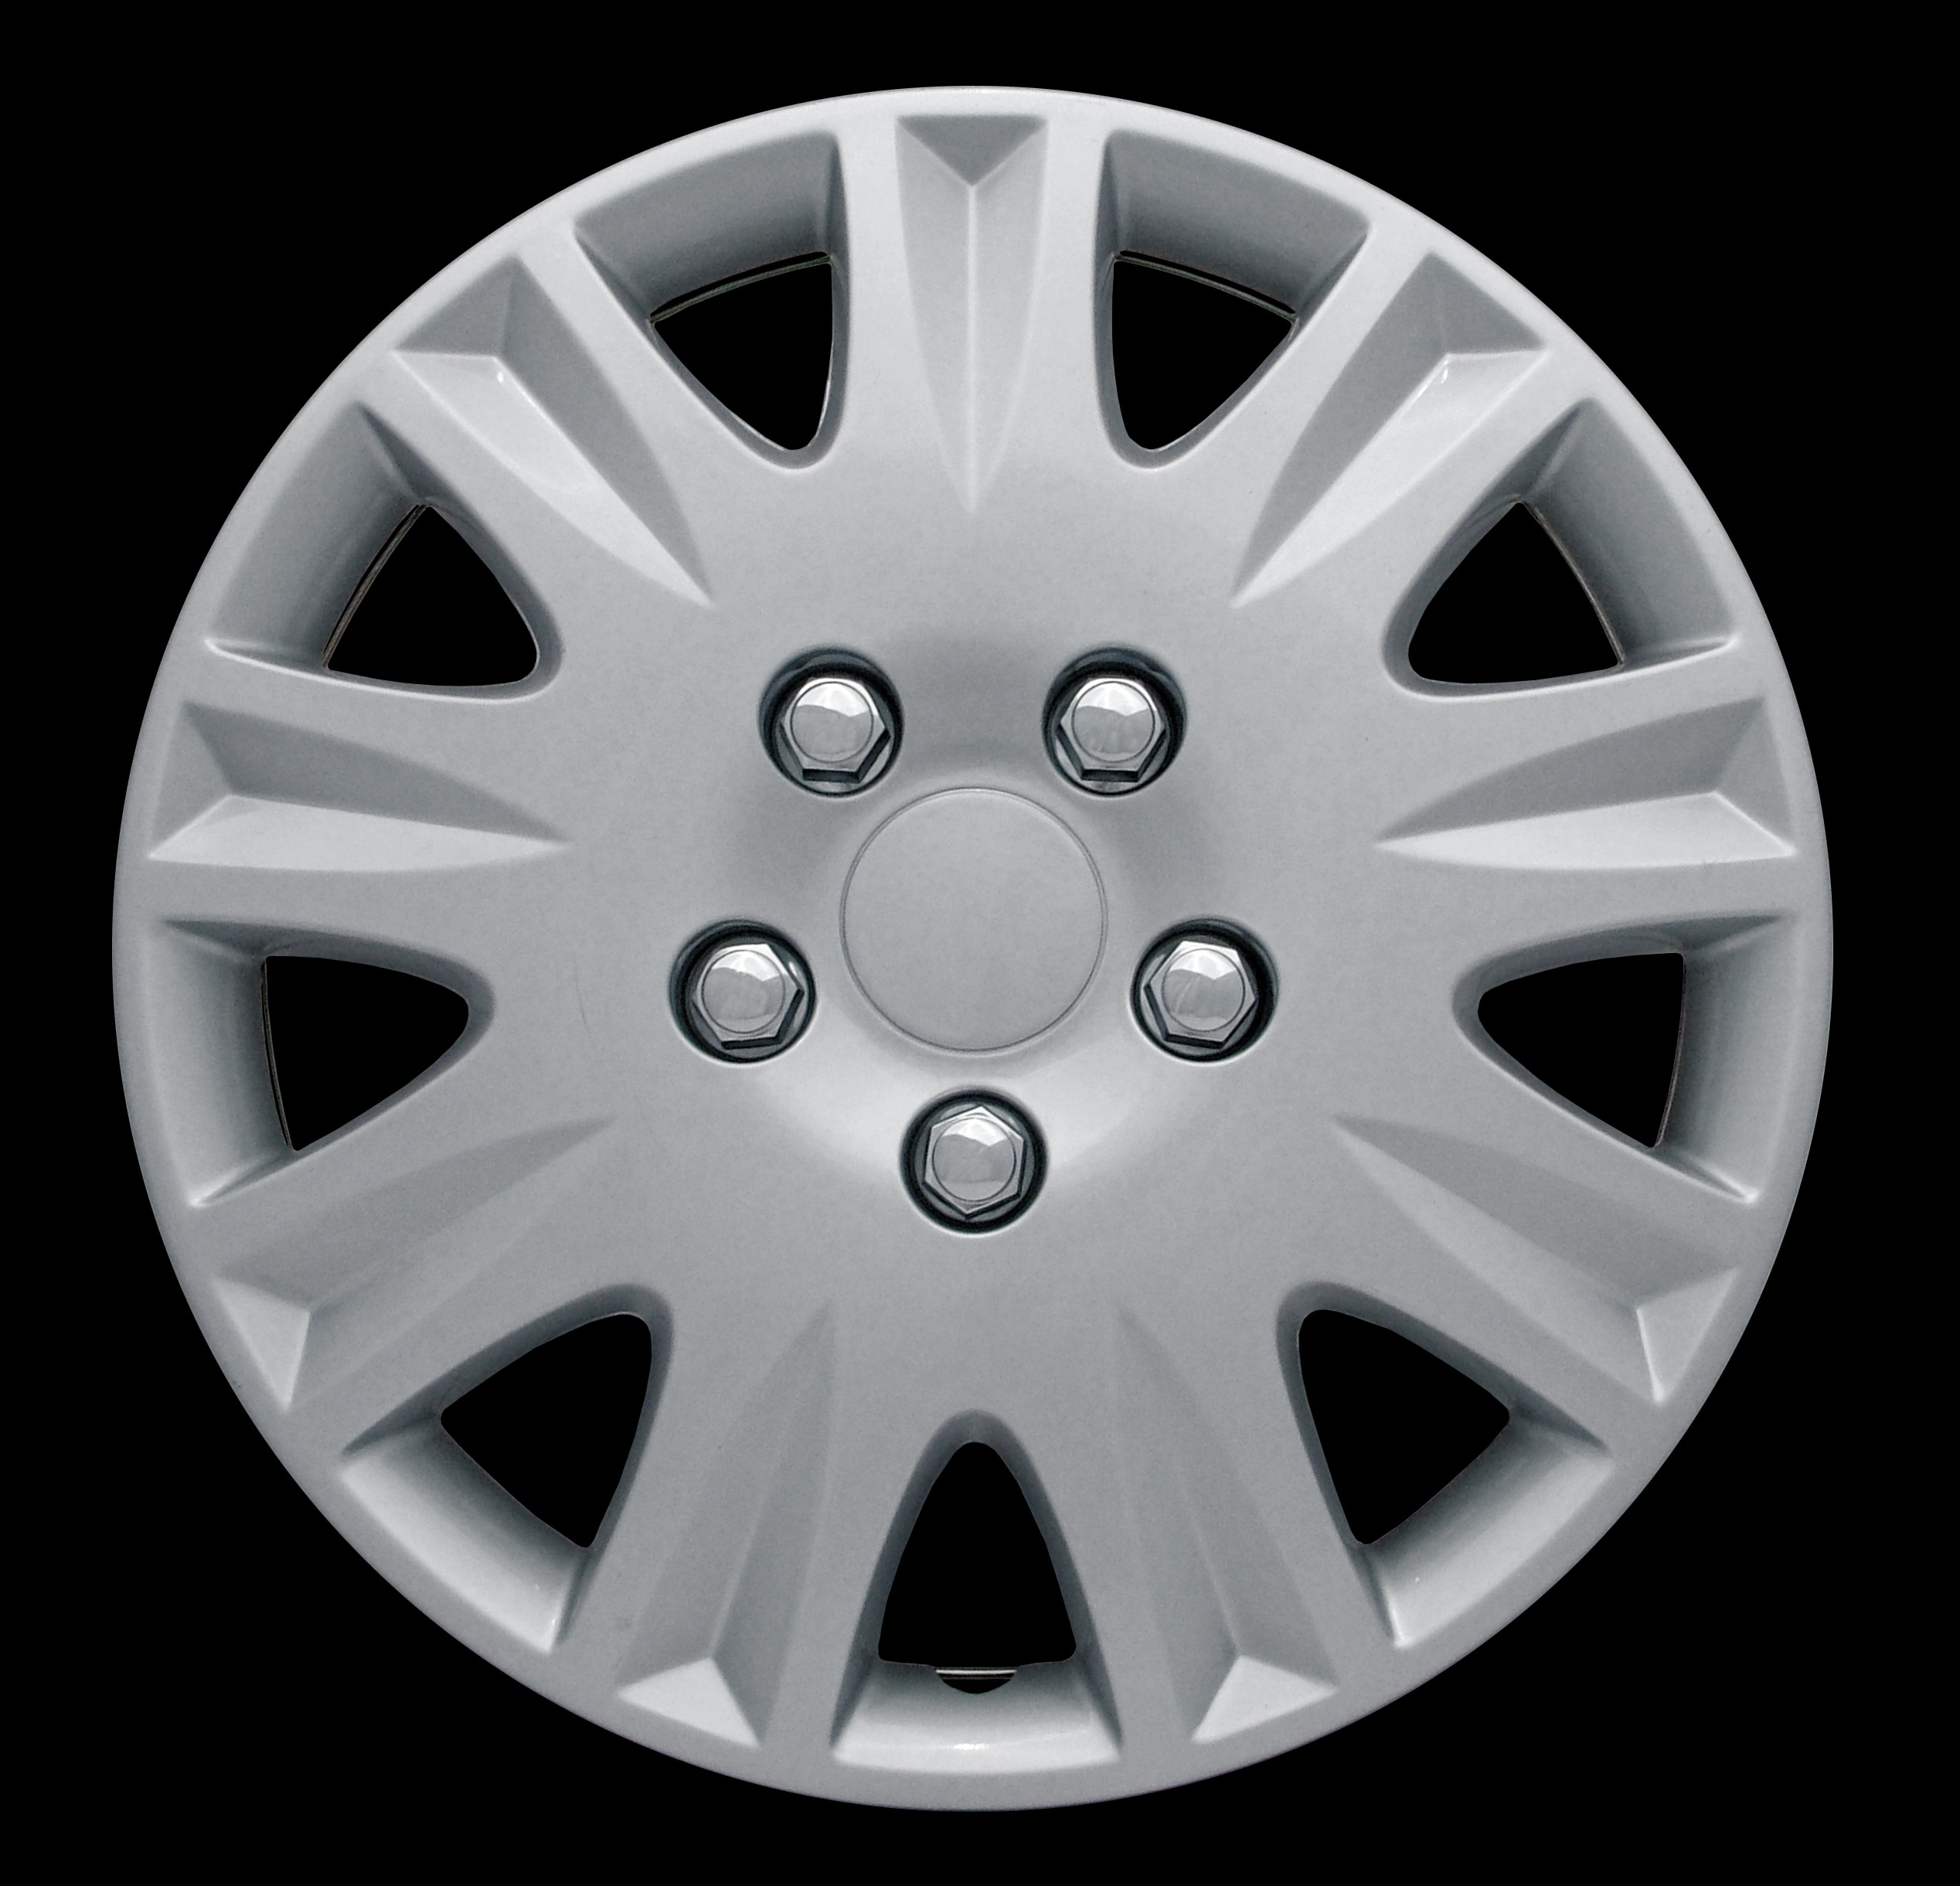 "Wheel Covers: Premier Series: 8111 Silver (15"")"